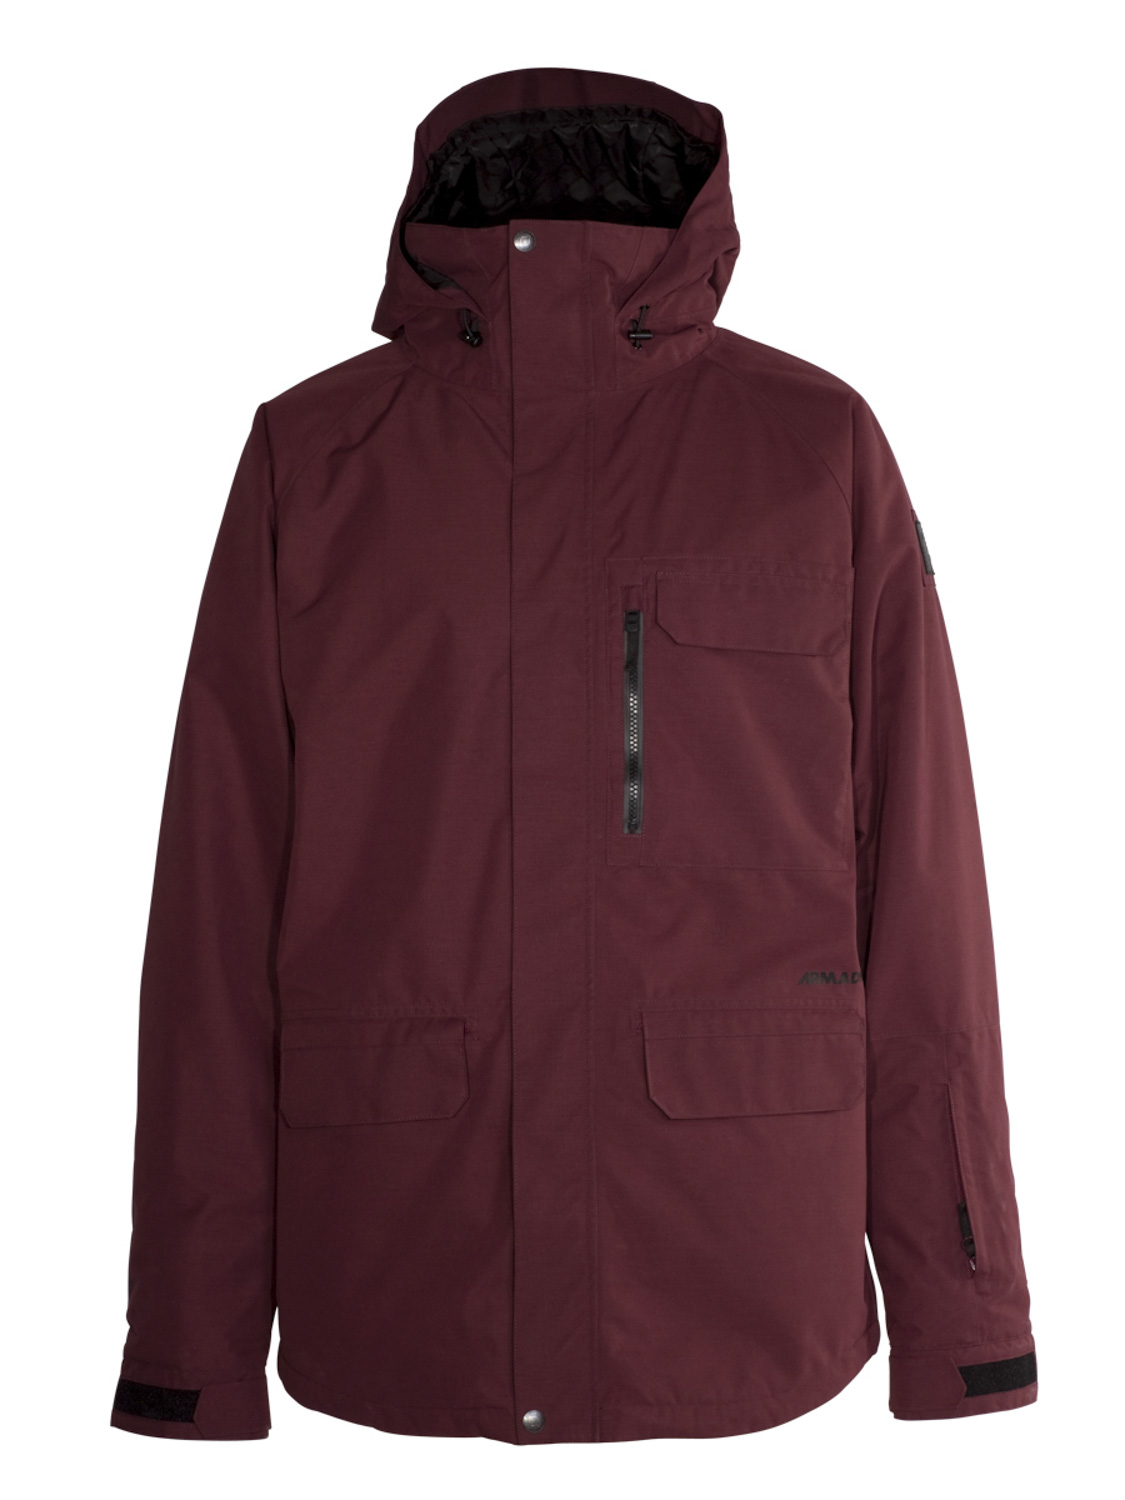 bunda ATKA GORE-TEX INSULATED JACKET burgundy